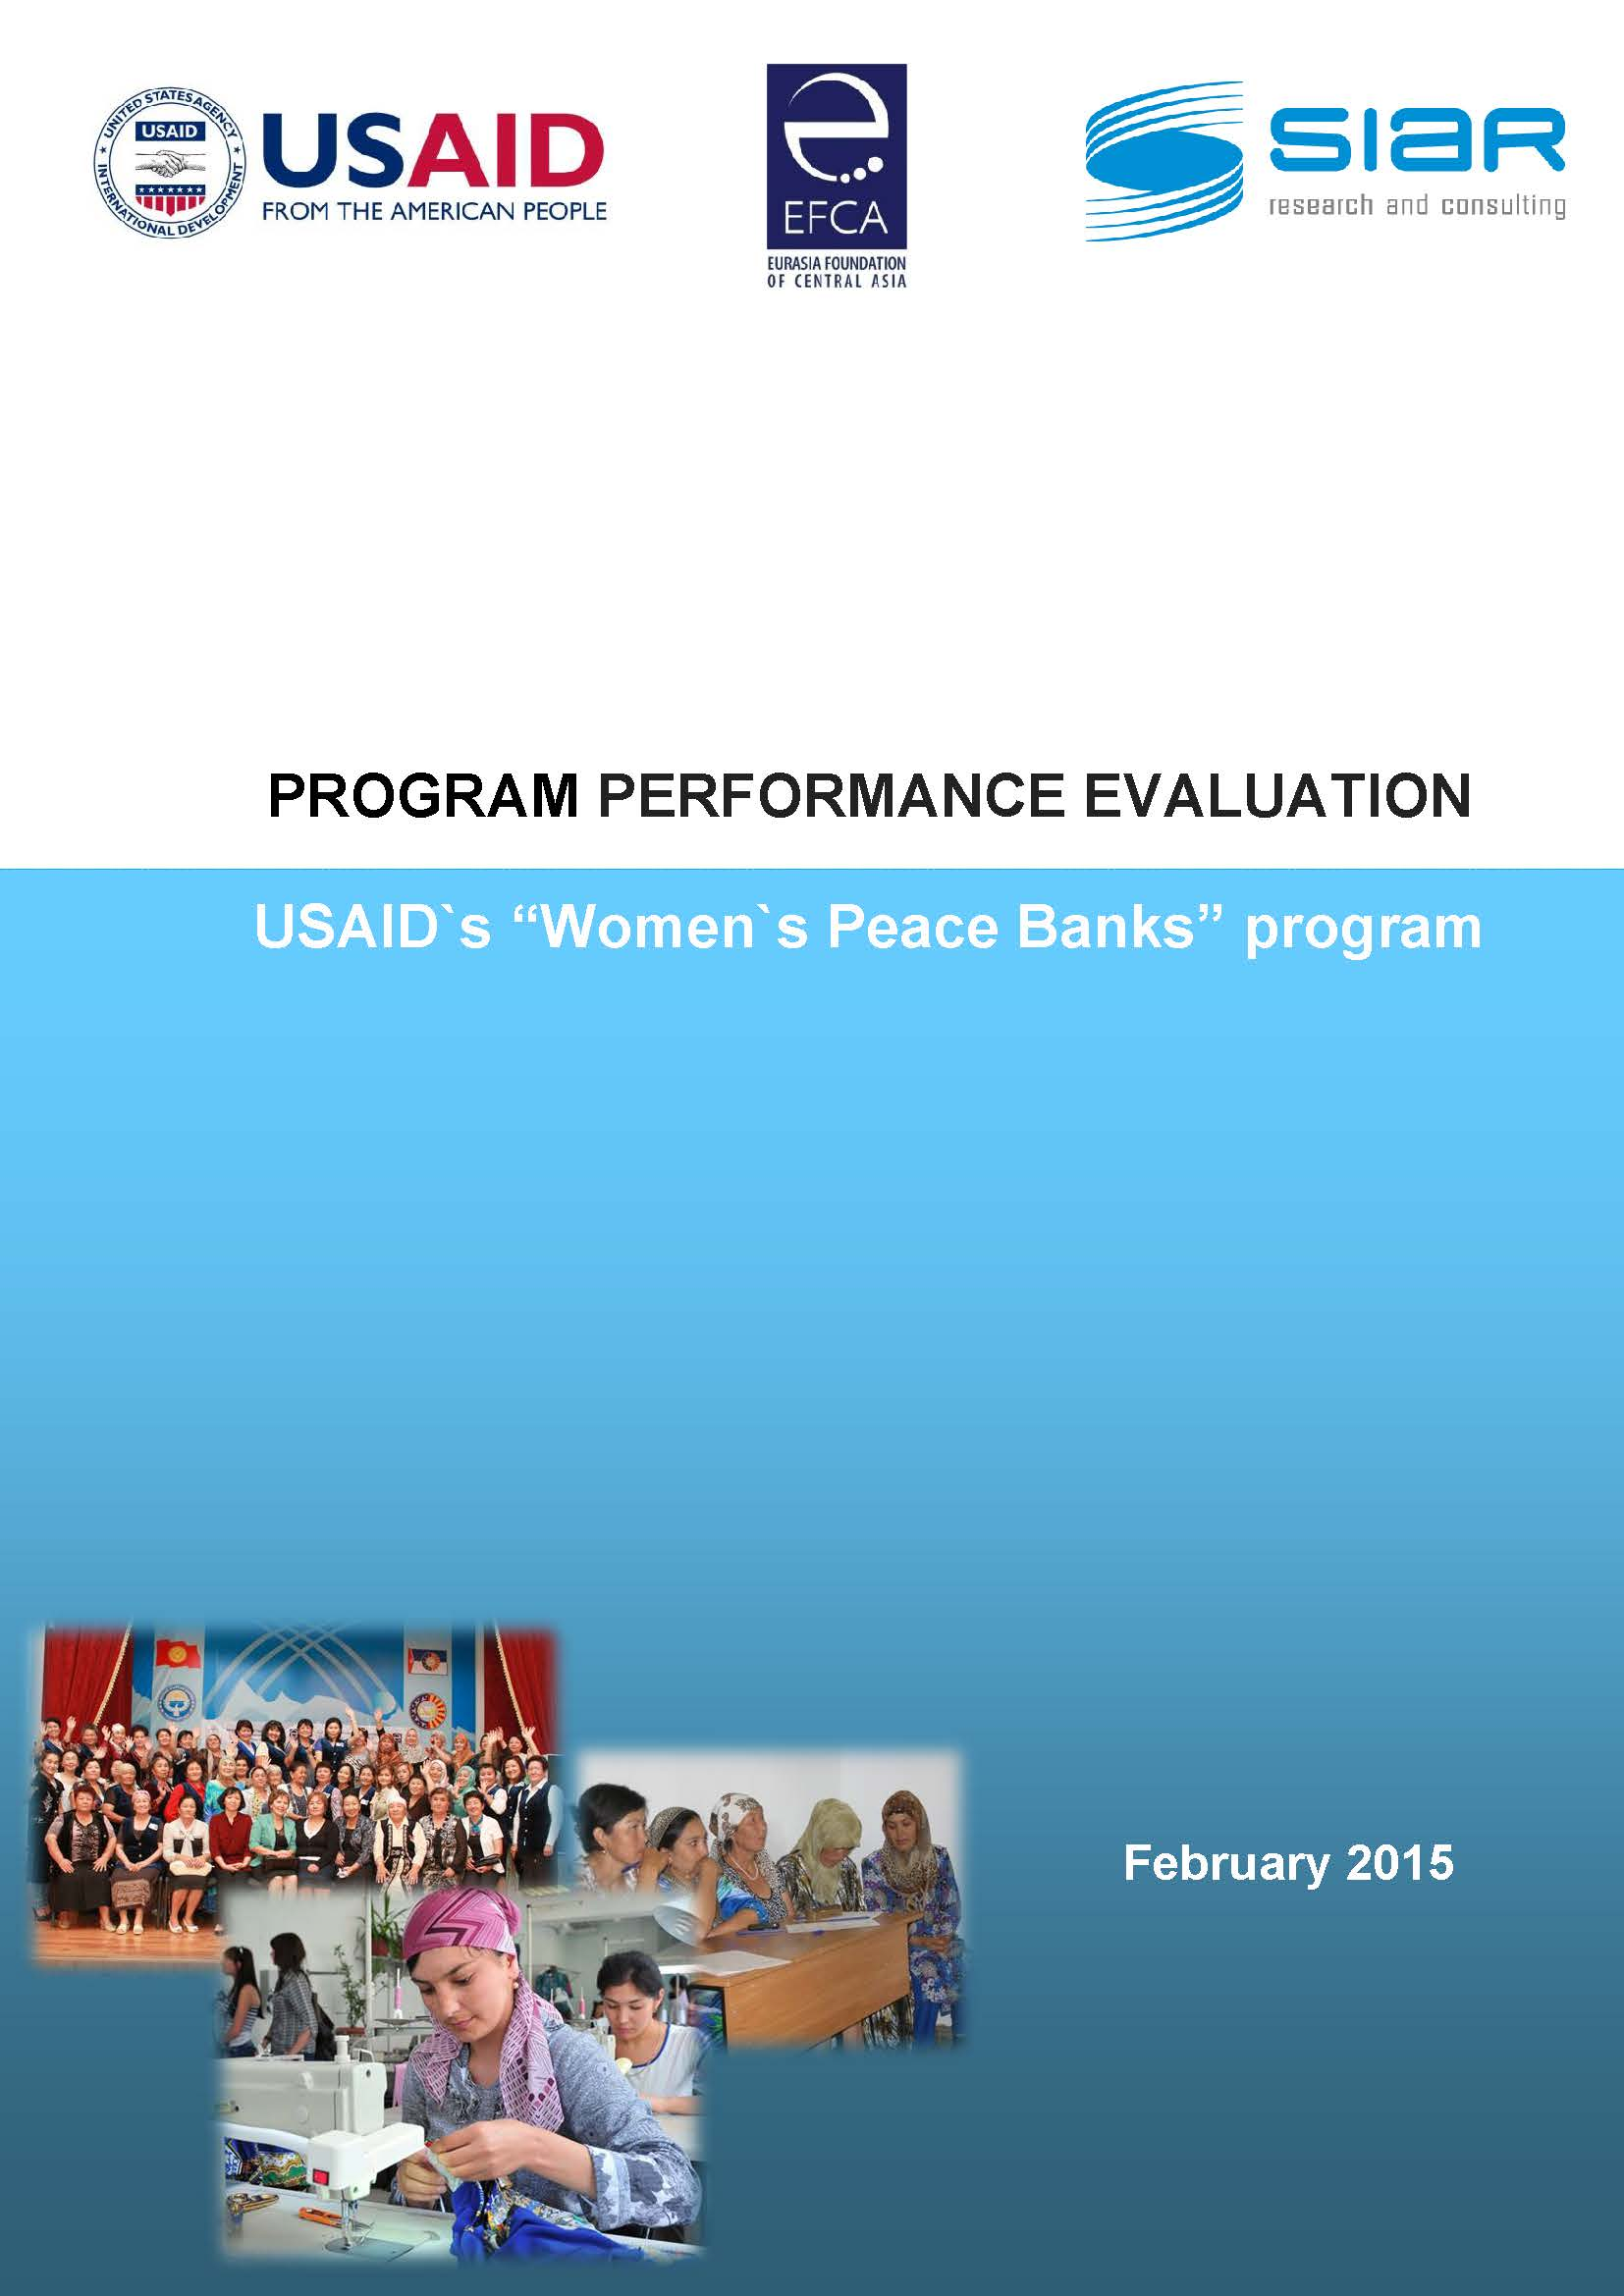 PROGRAM PERFORMANCE EVALUATION: Women's Peace Banks